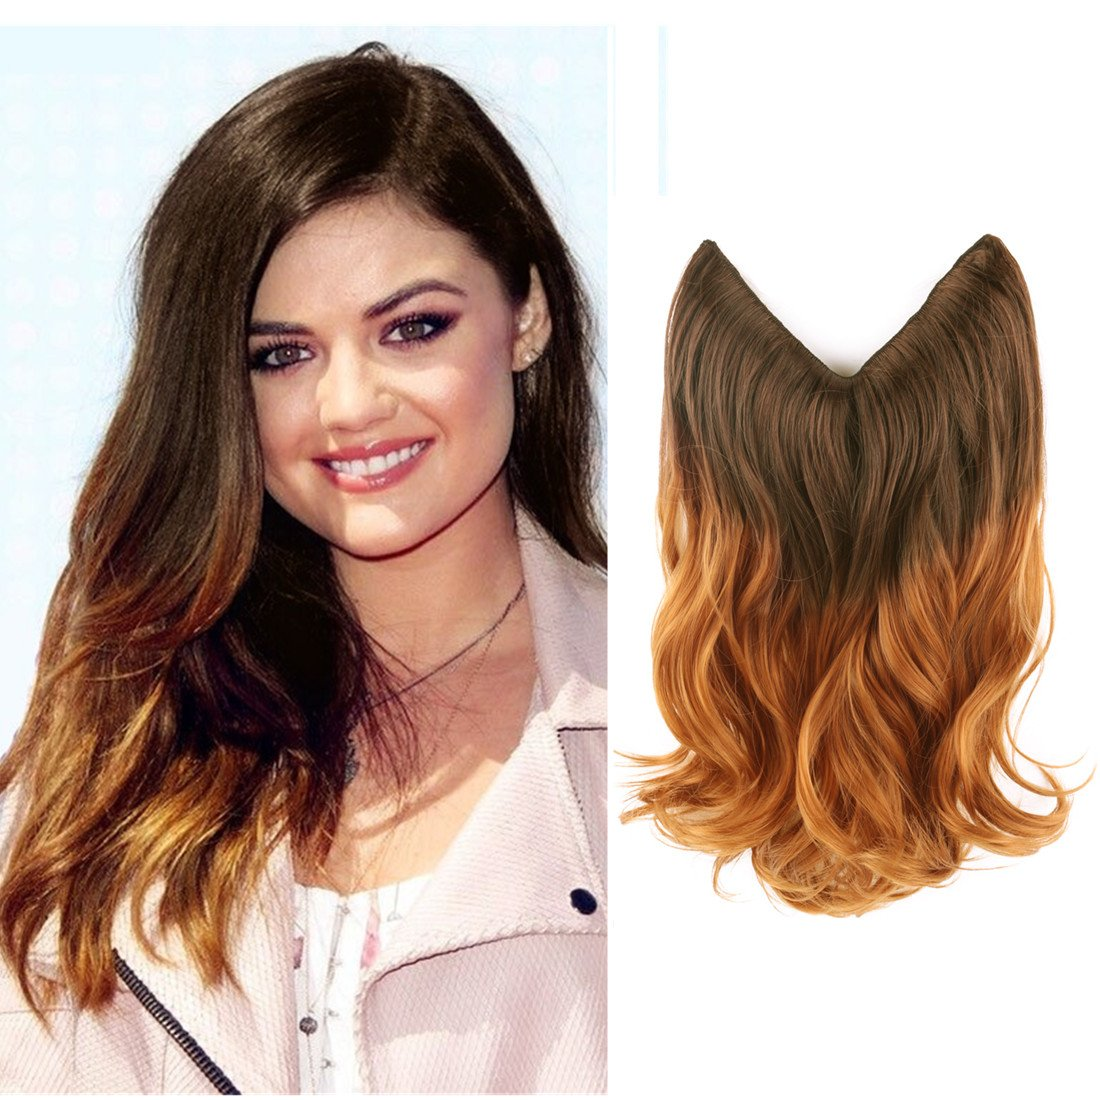 Amazon Creamily 20 Wavy Curly Brown To Golden Blond Ombre Dip